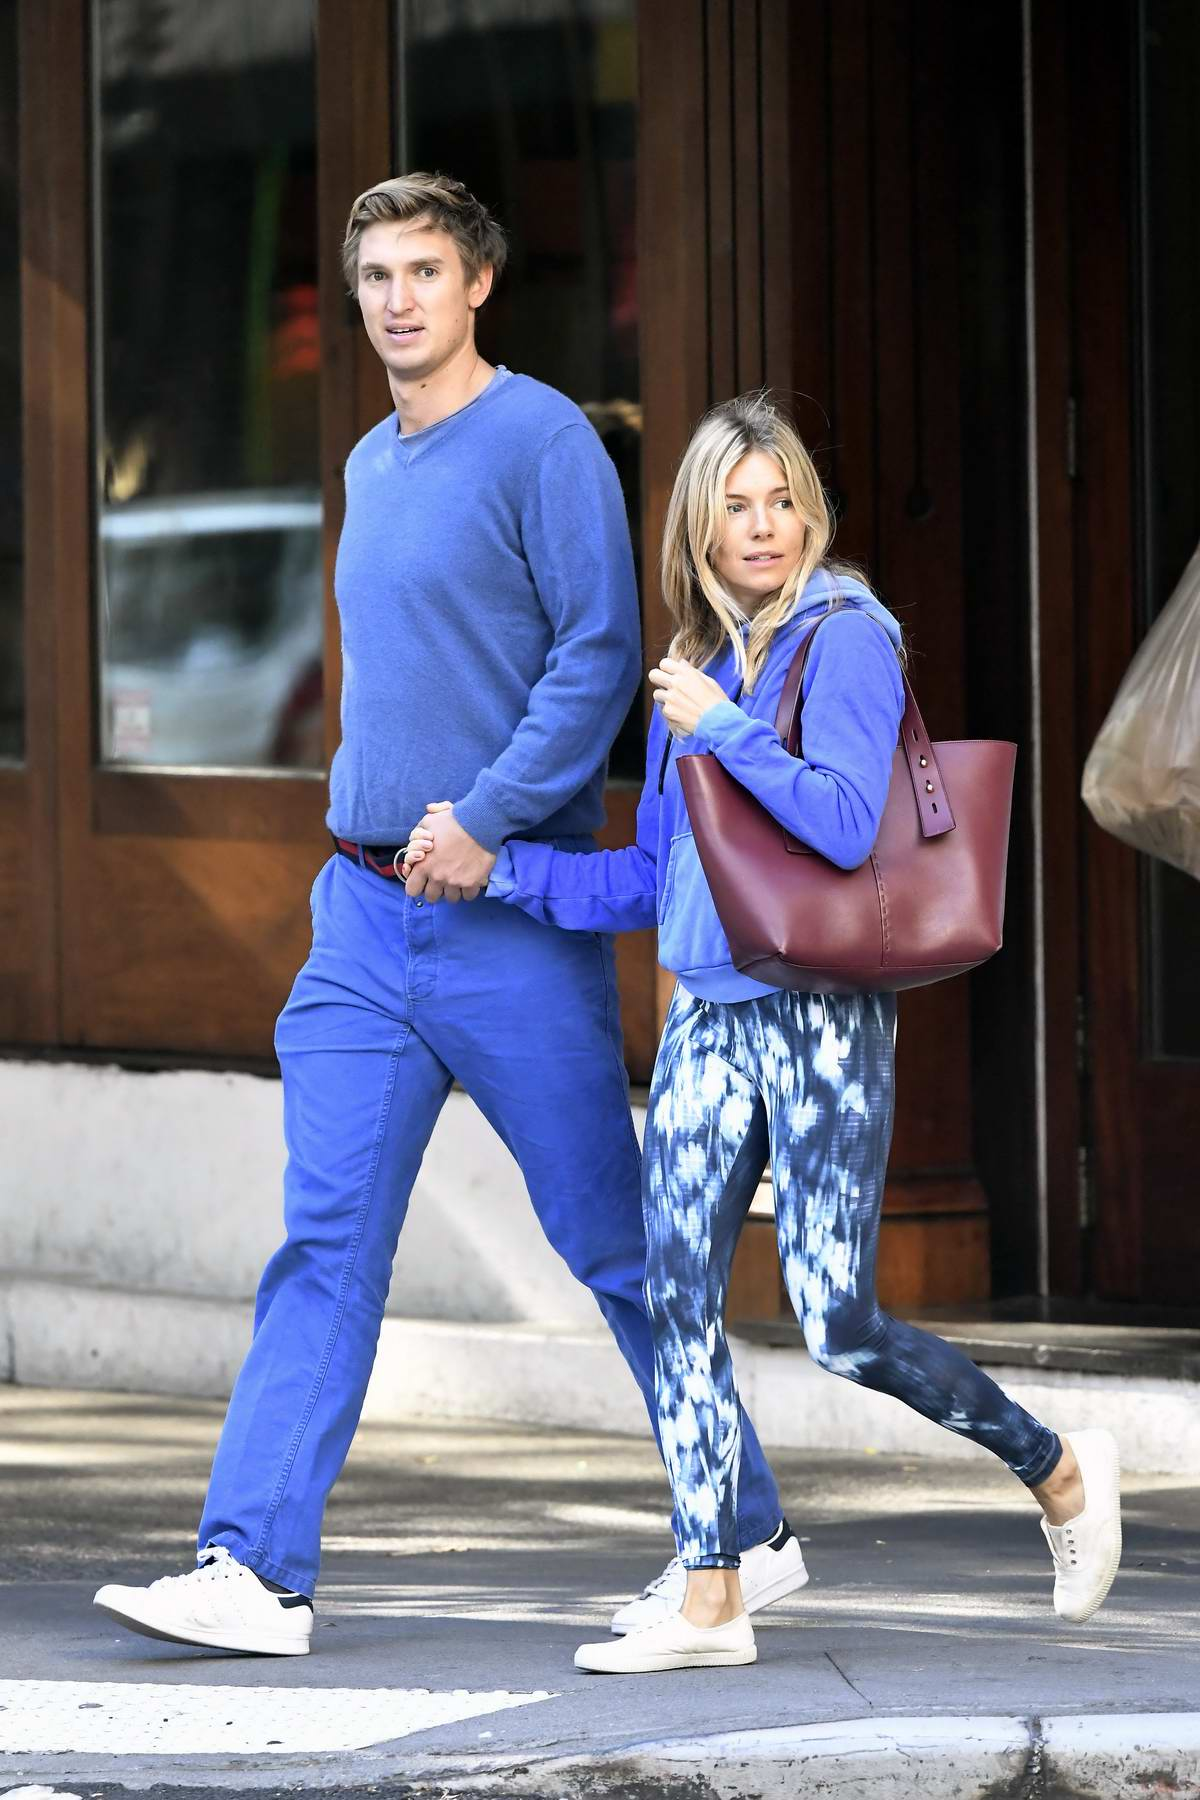 Sienna Miller and Lucas Zwirner step out for a morning stroll in New York City